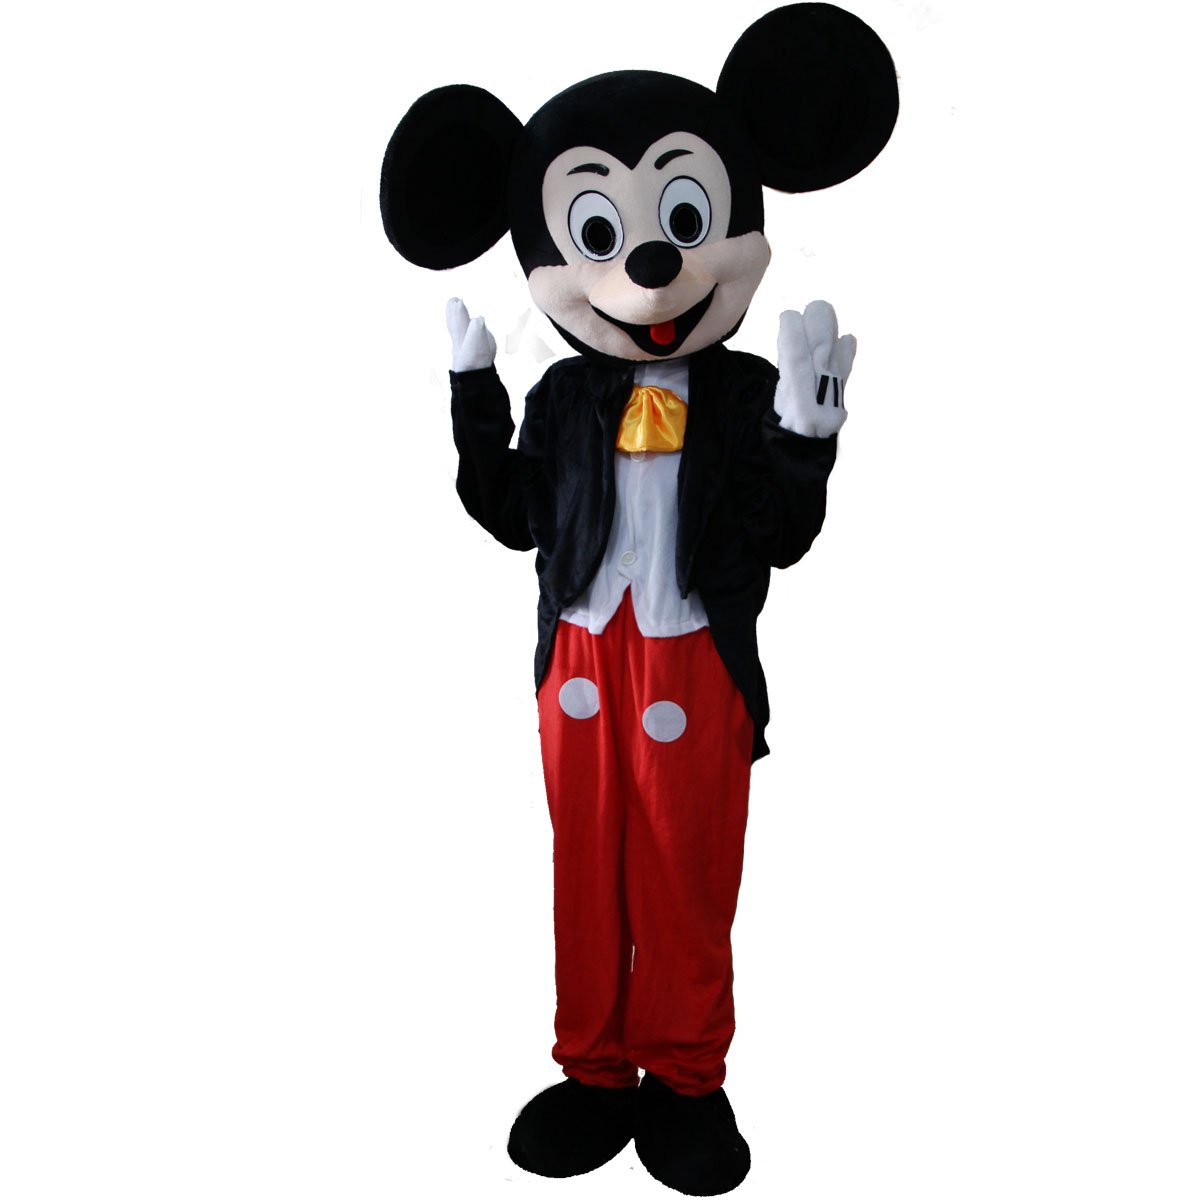 Laies Sky Mickey Mouse Minne Cartoon Character Mascot Costume by Laies Sky